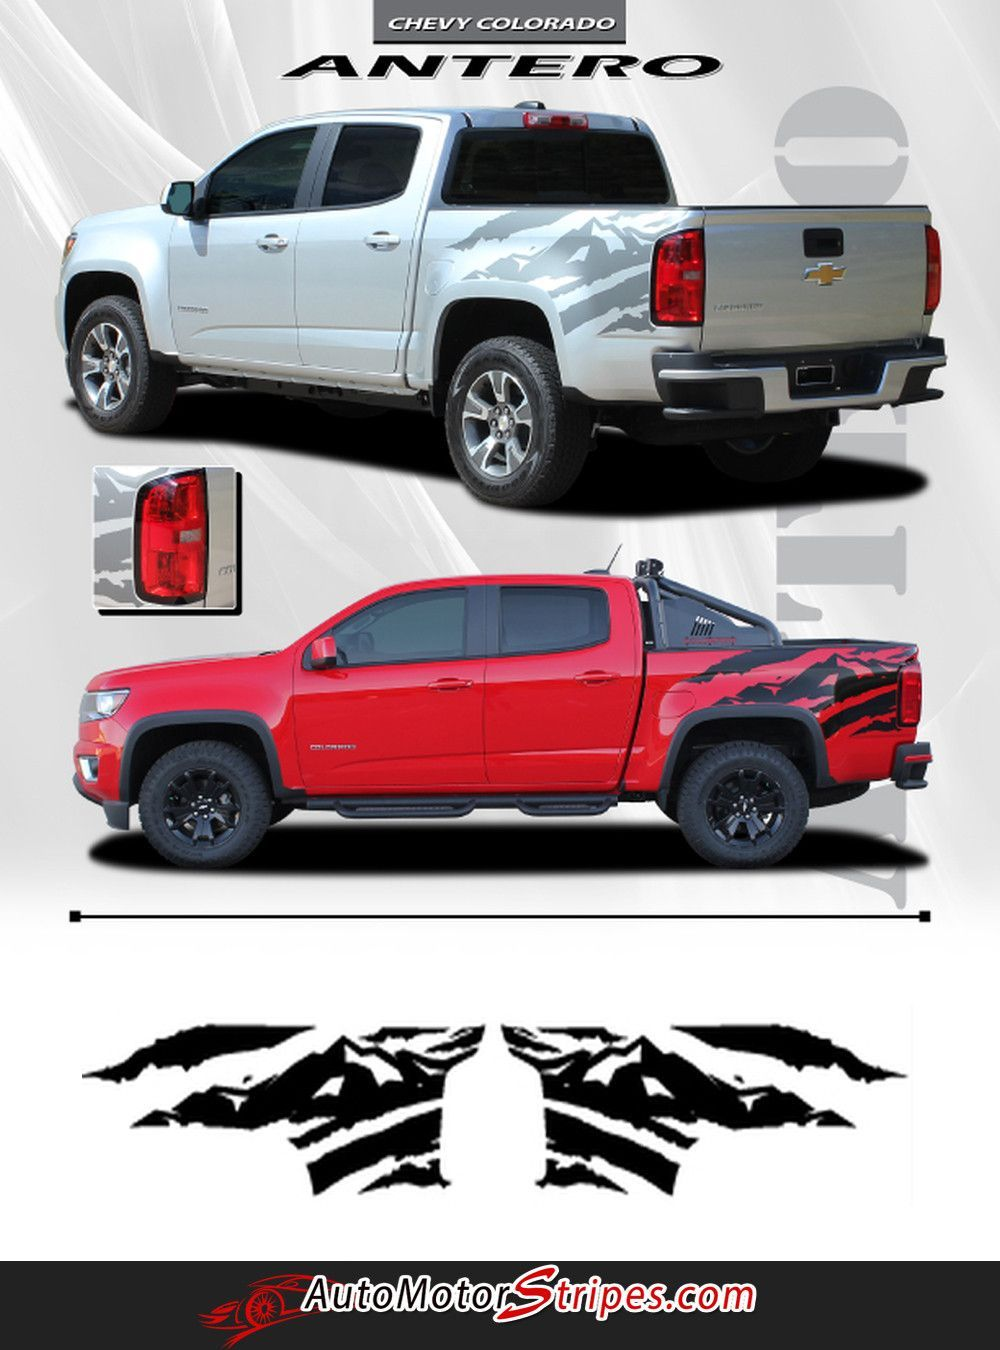 Chevy Colorado ANTERO Rear Side Truck Bed - Truck bed decals customford fvinyl graphics for bed fender